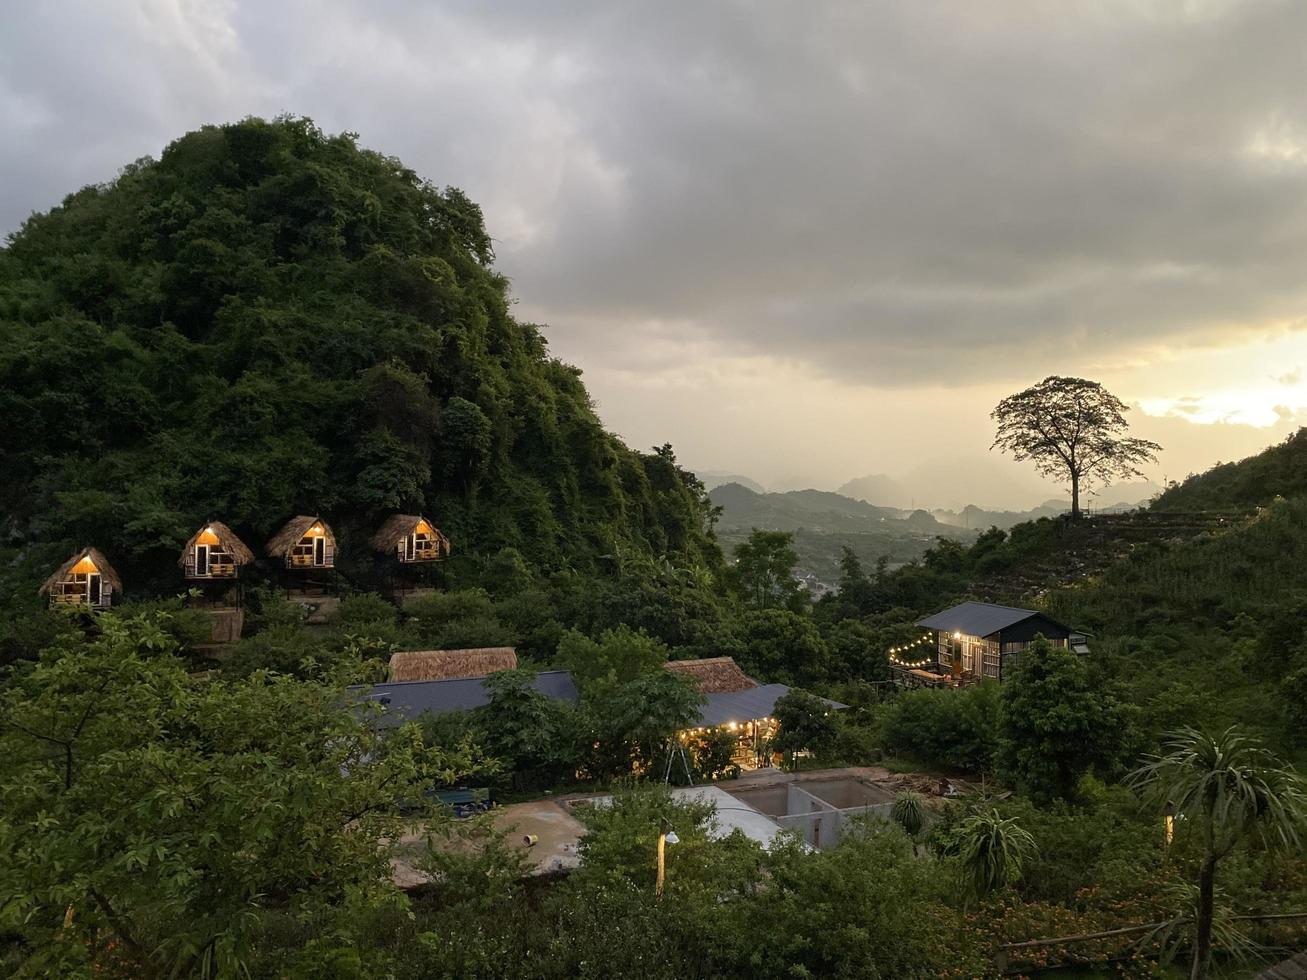 Cabins among trees and mountains photo